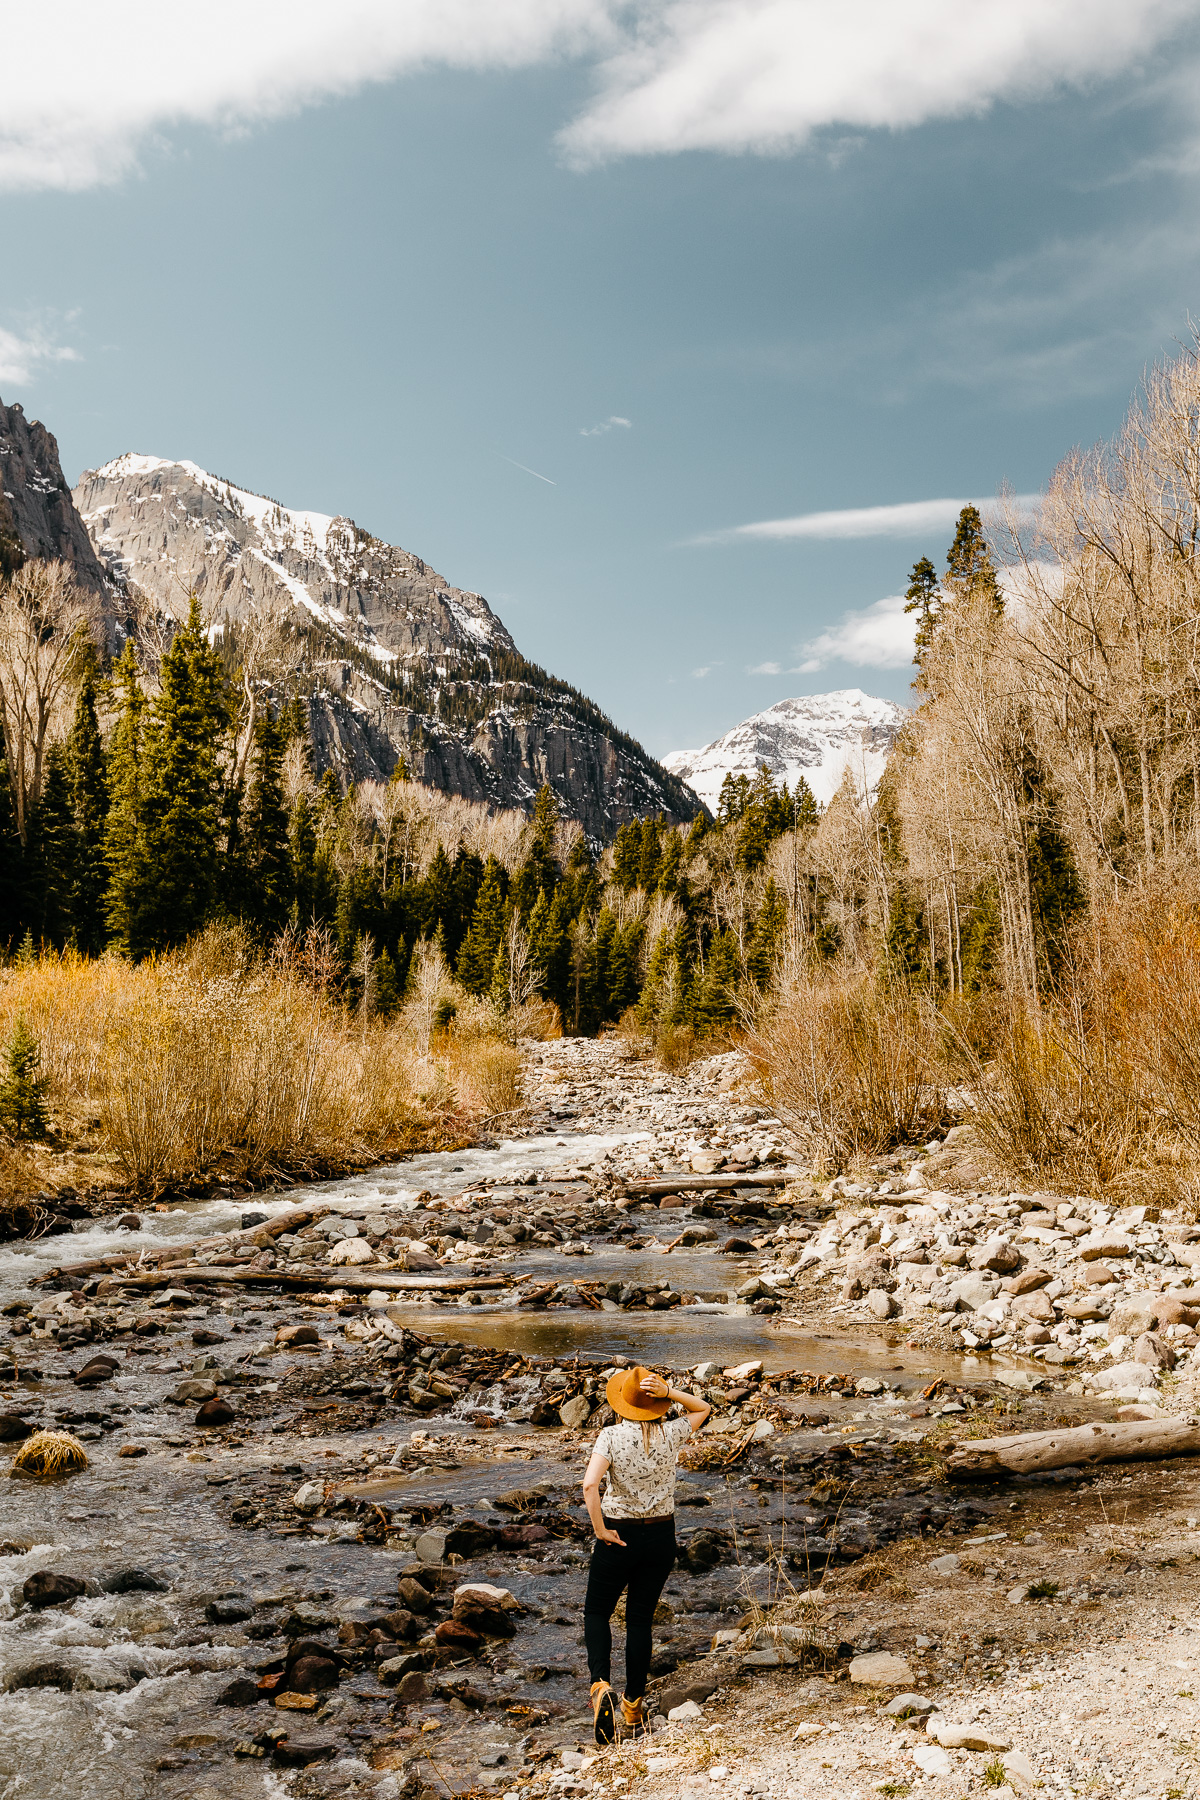 The Ultimate 10 Day Road Trip Through Colorado | Ouray and Camp Bird